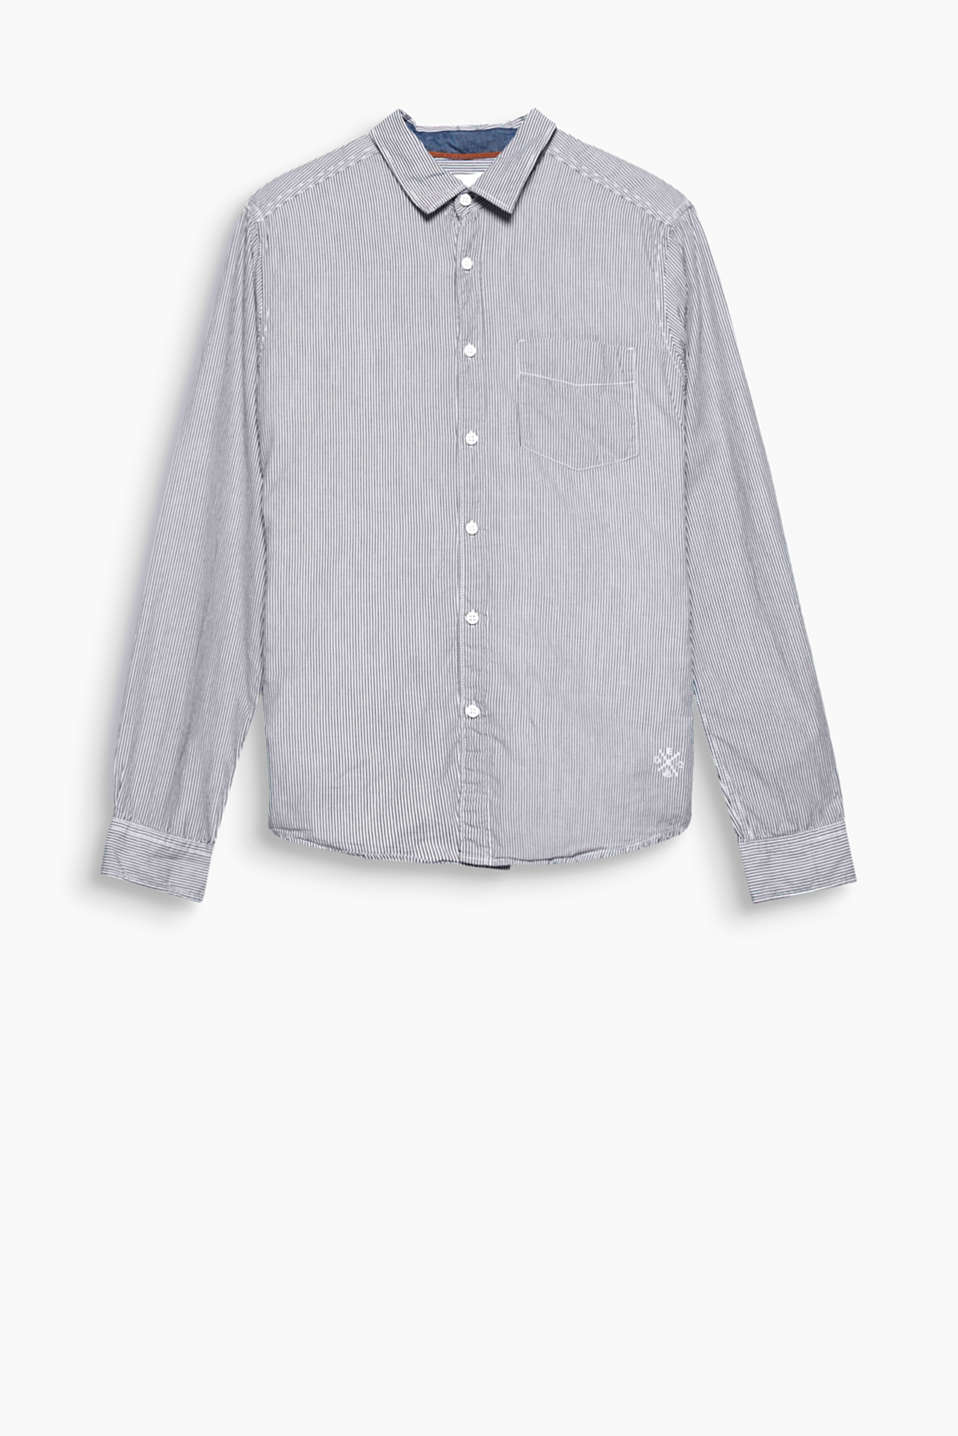 An everyday fave: Pure cotton shirt with fine stripes and a narrow collar